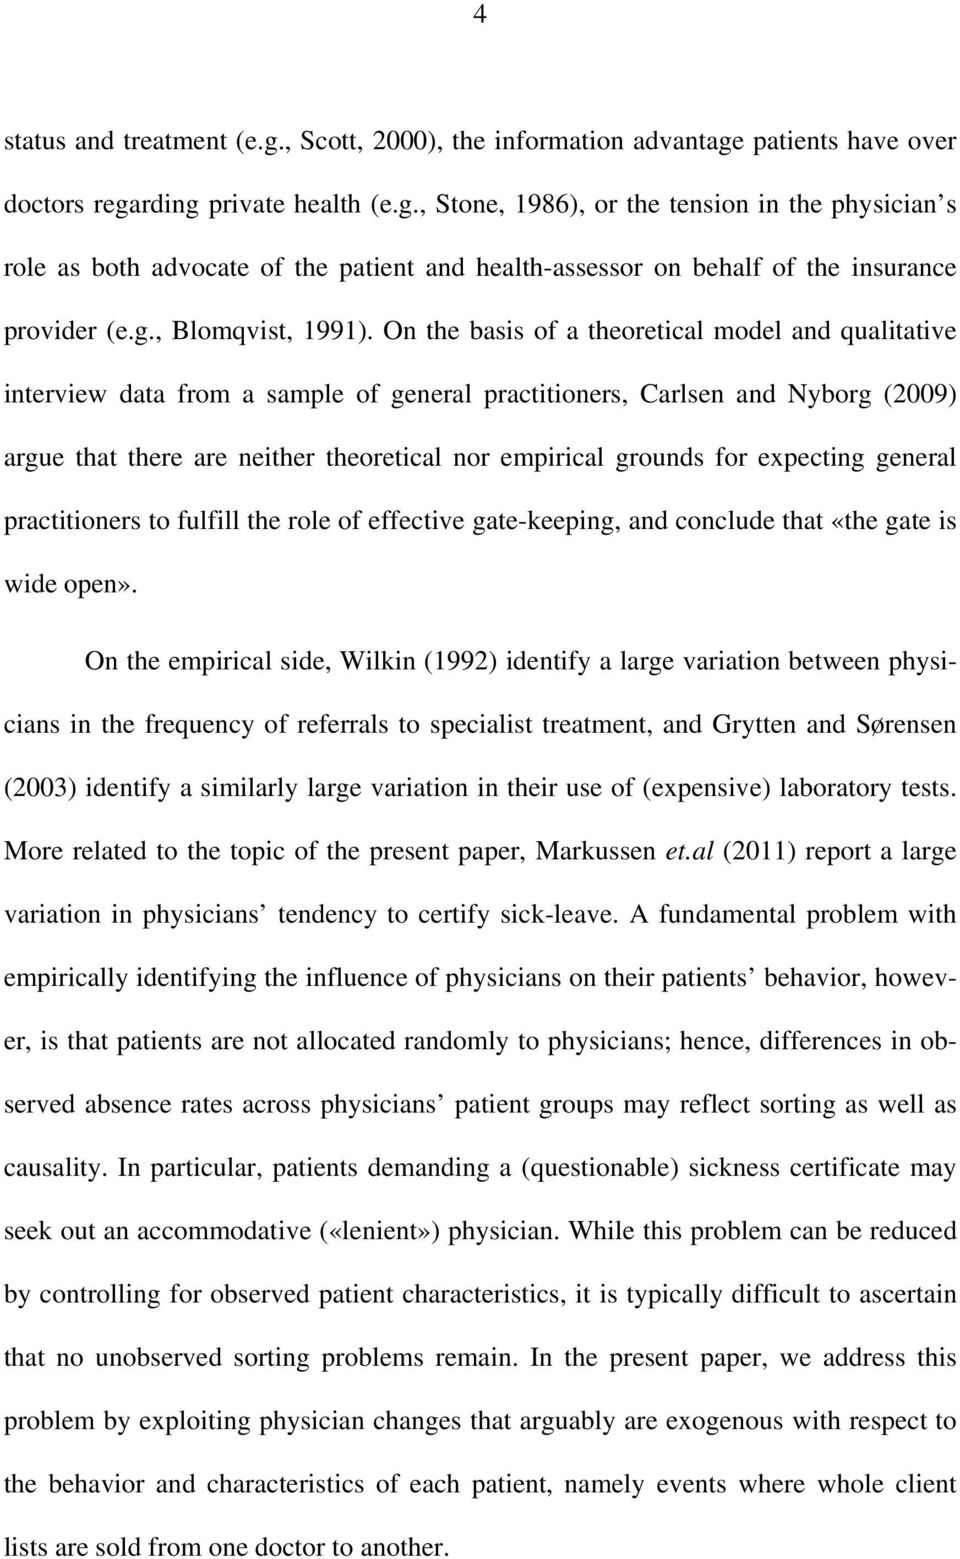 On the basis of a theoretical model and qualitative interview data from a sample of general practitioners, Carlsen and Nyborg (2009) argue that there are neither theoretical nor empirical grounds for